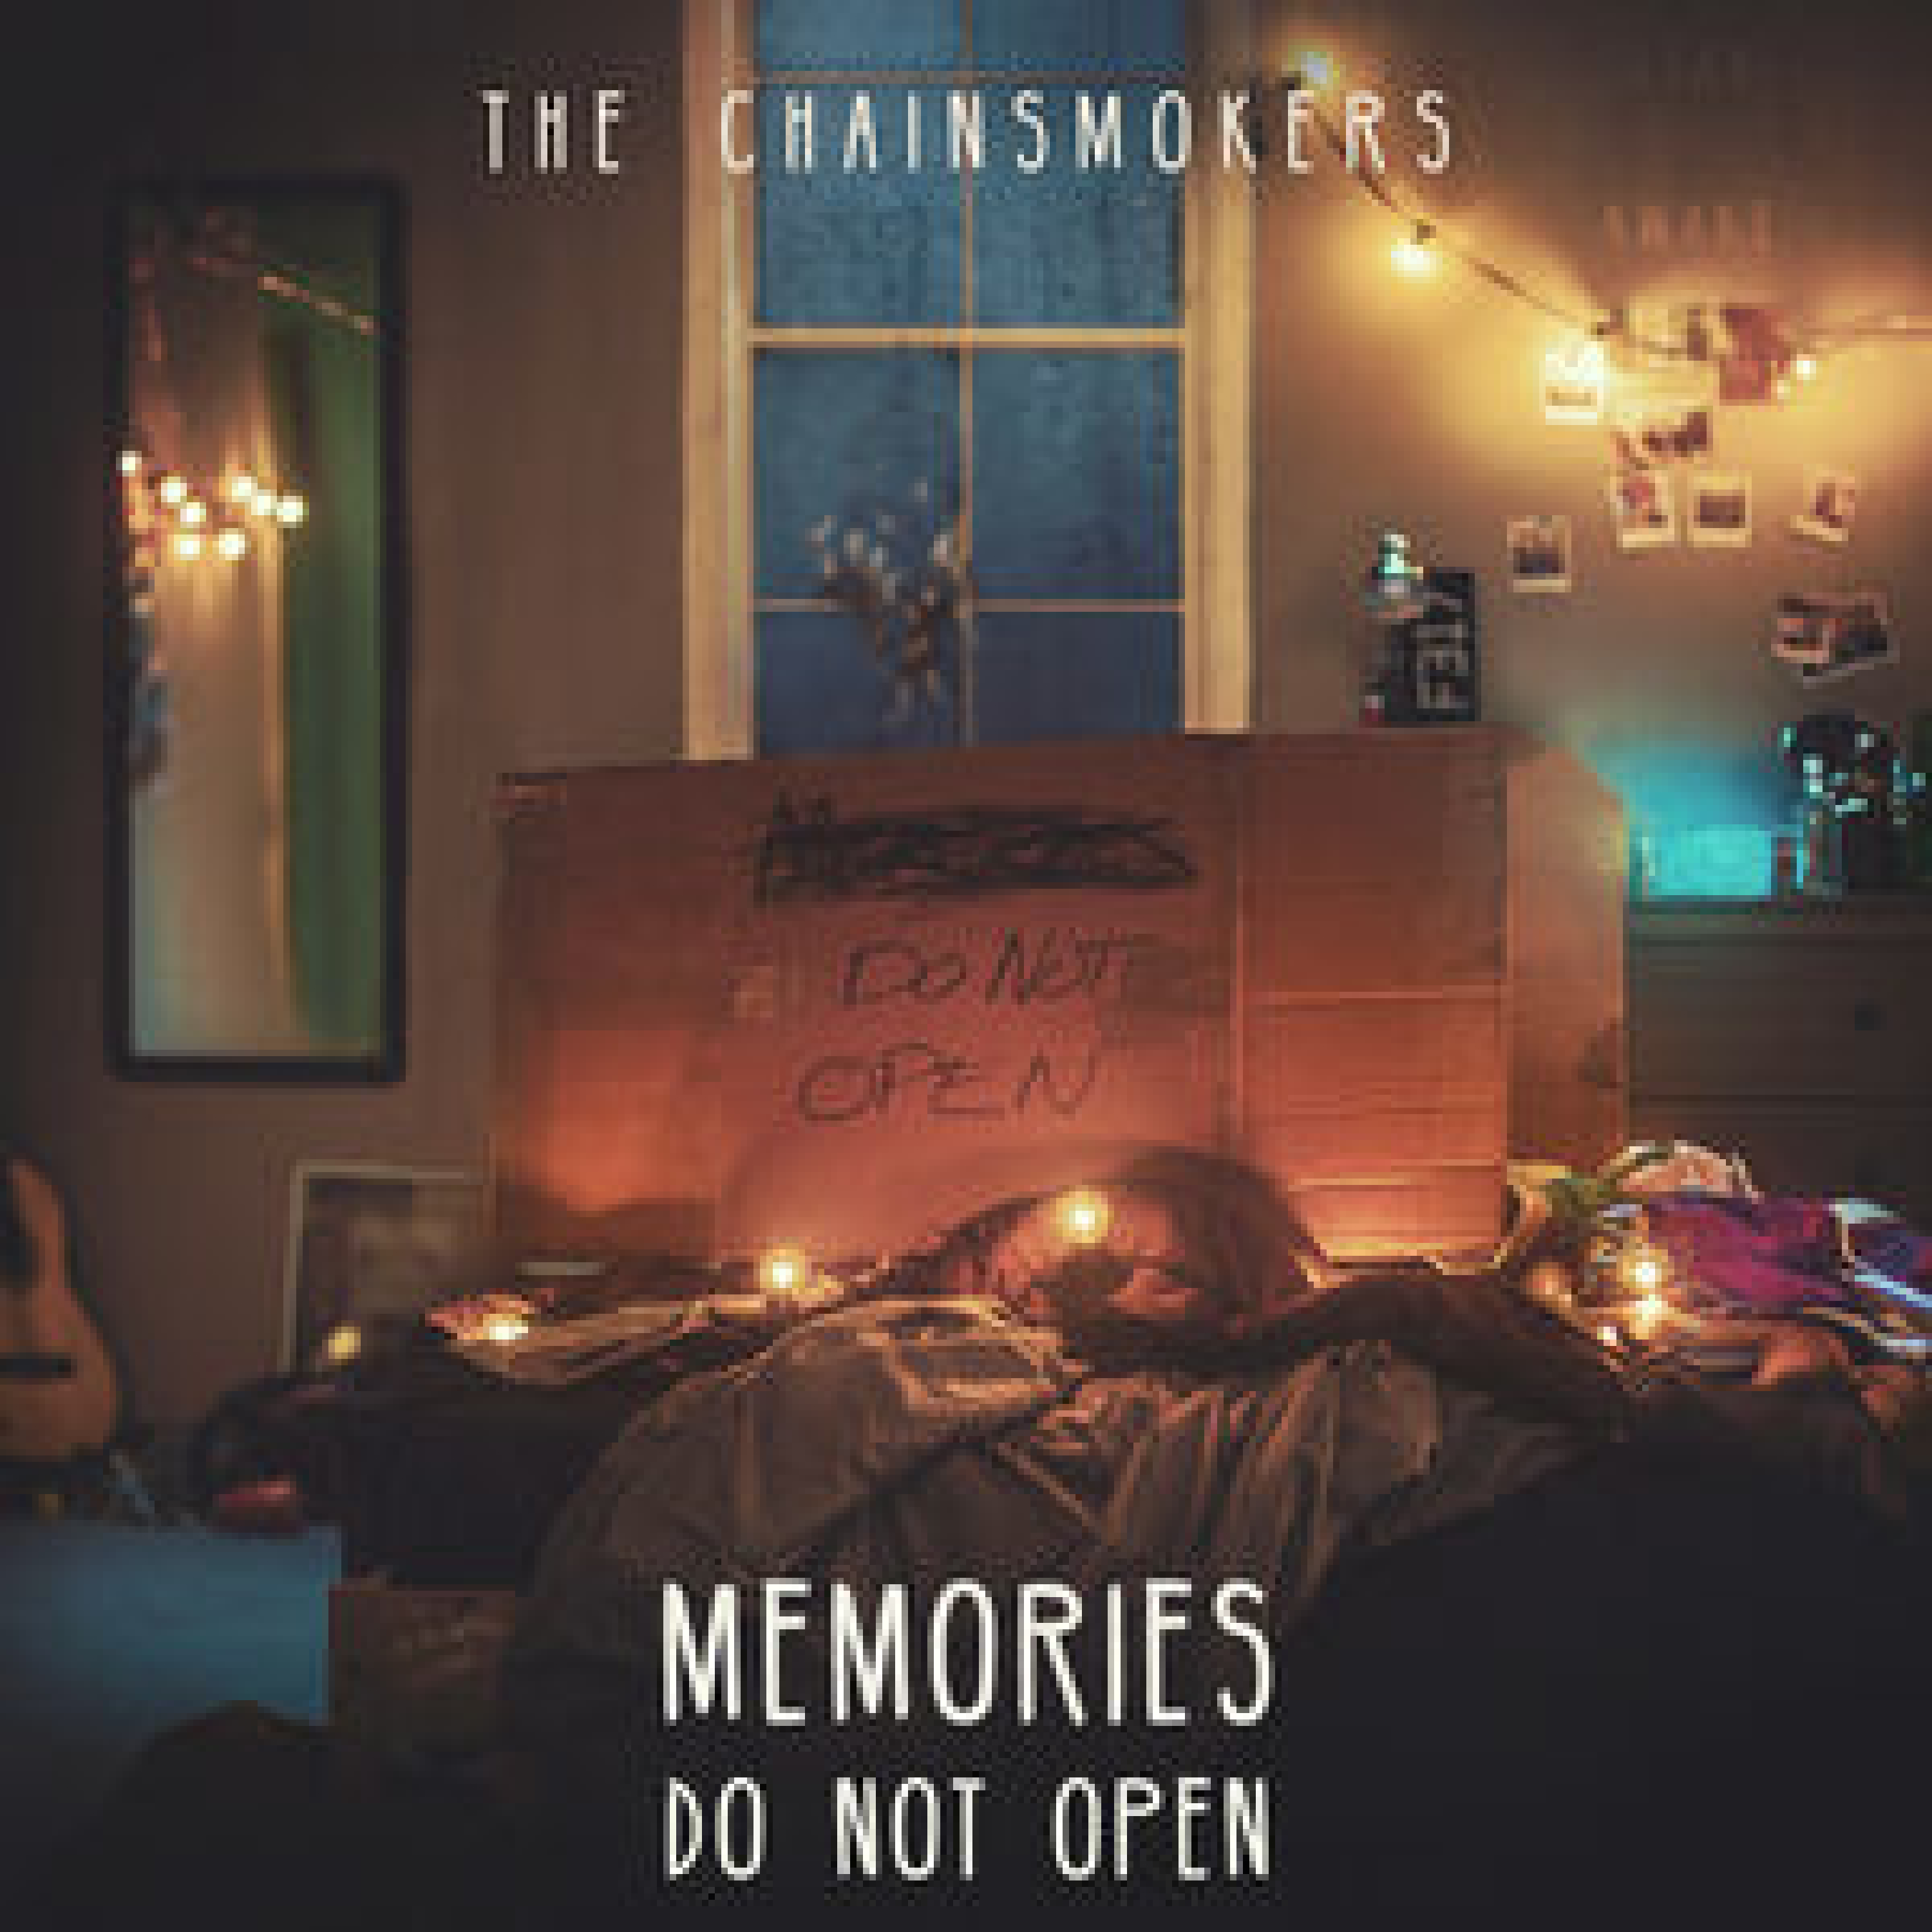 Something Just Like This - The Chainsmokers